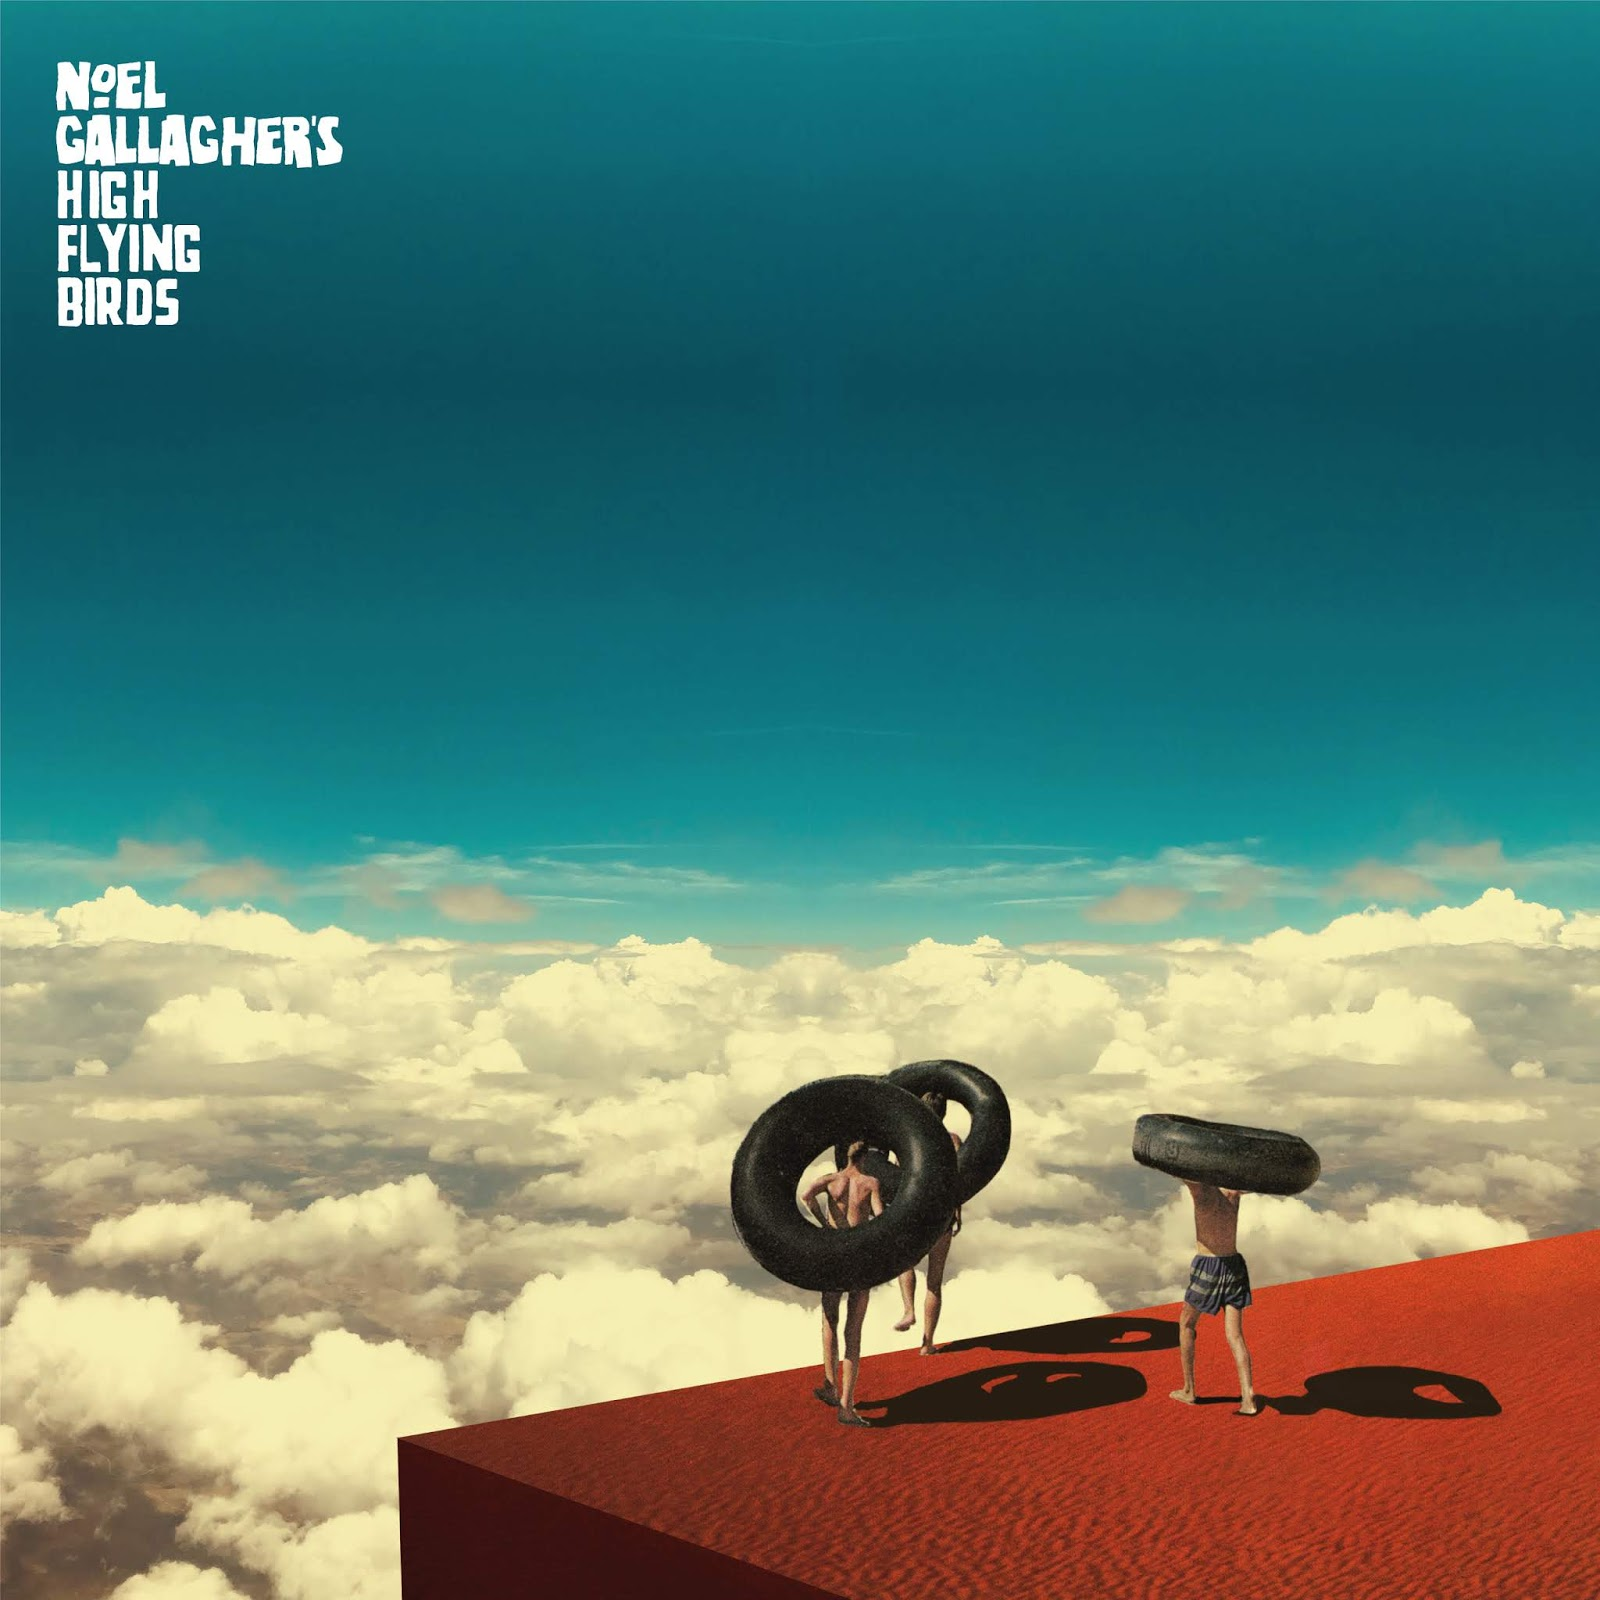 News – Noel Gallagher's High Flying Birds – The Wait And Return EP